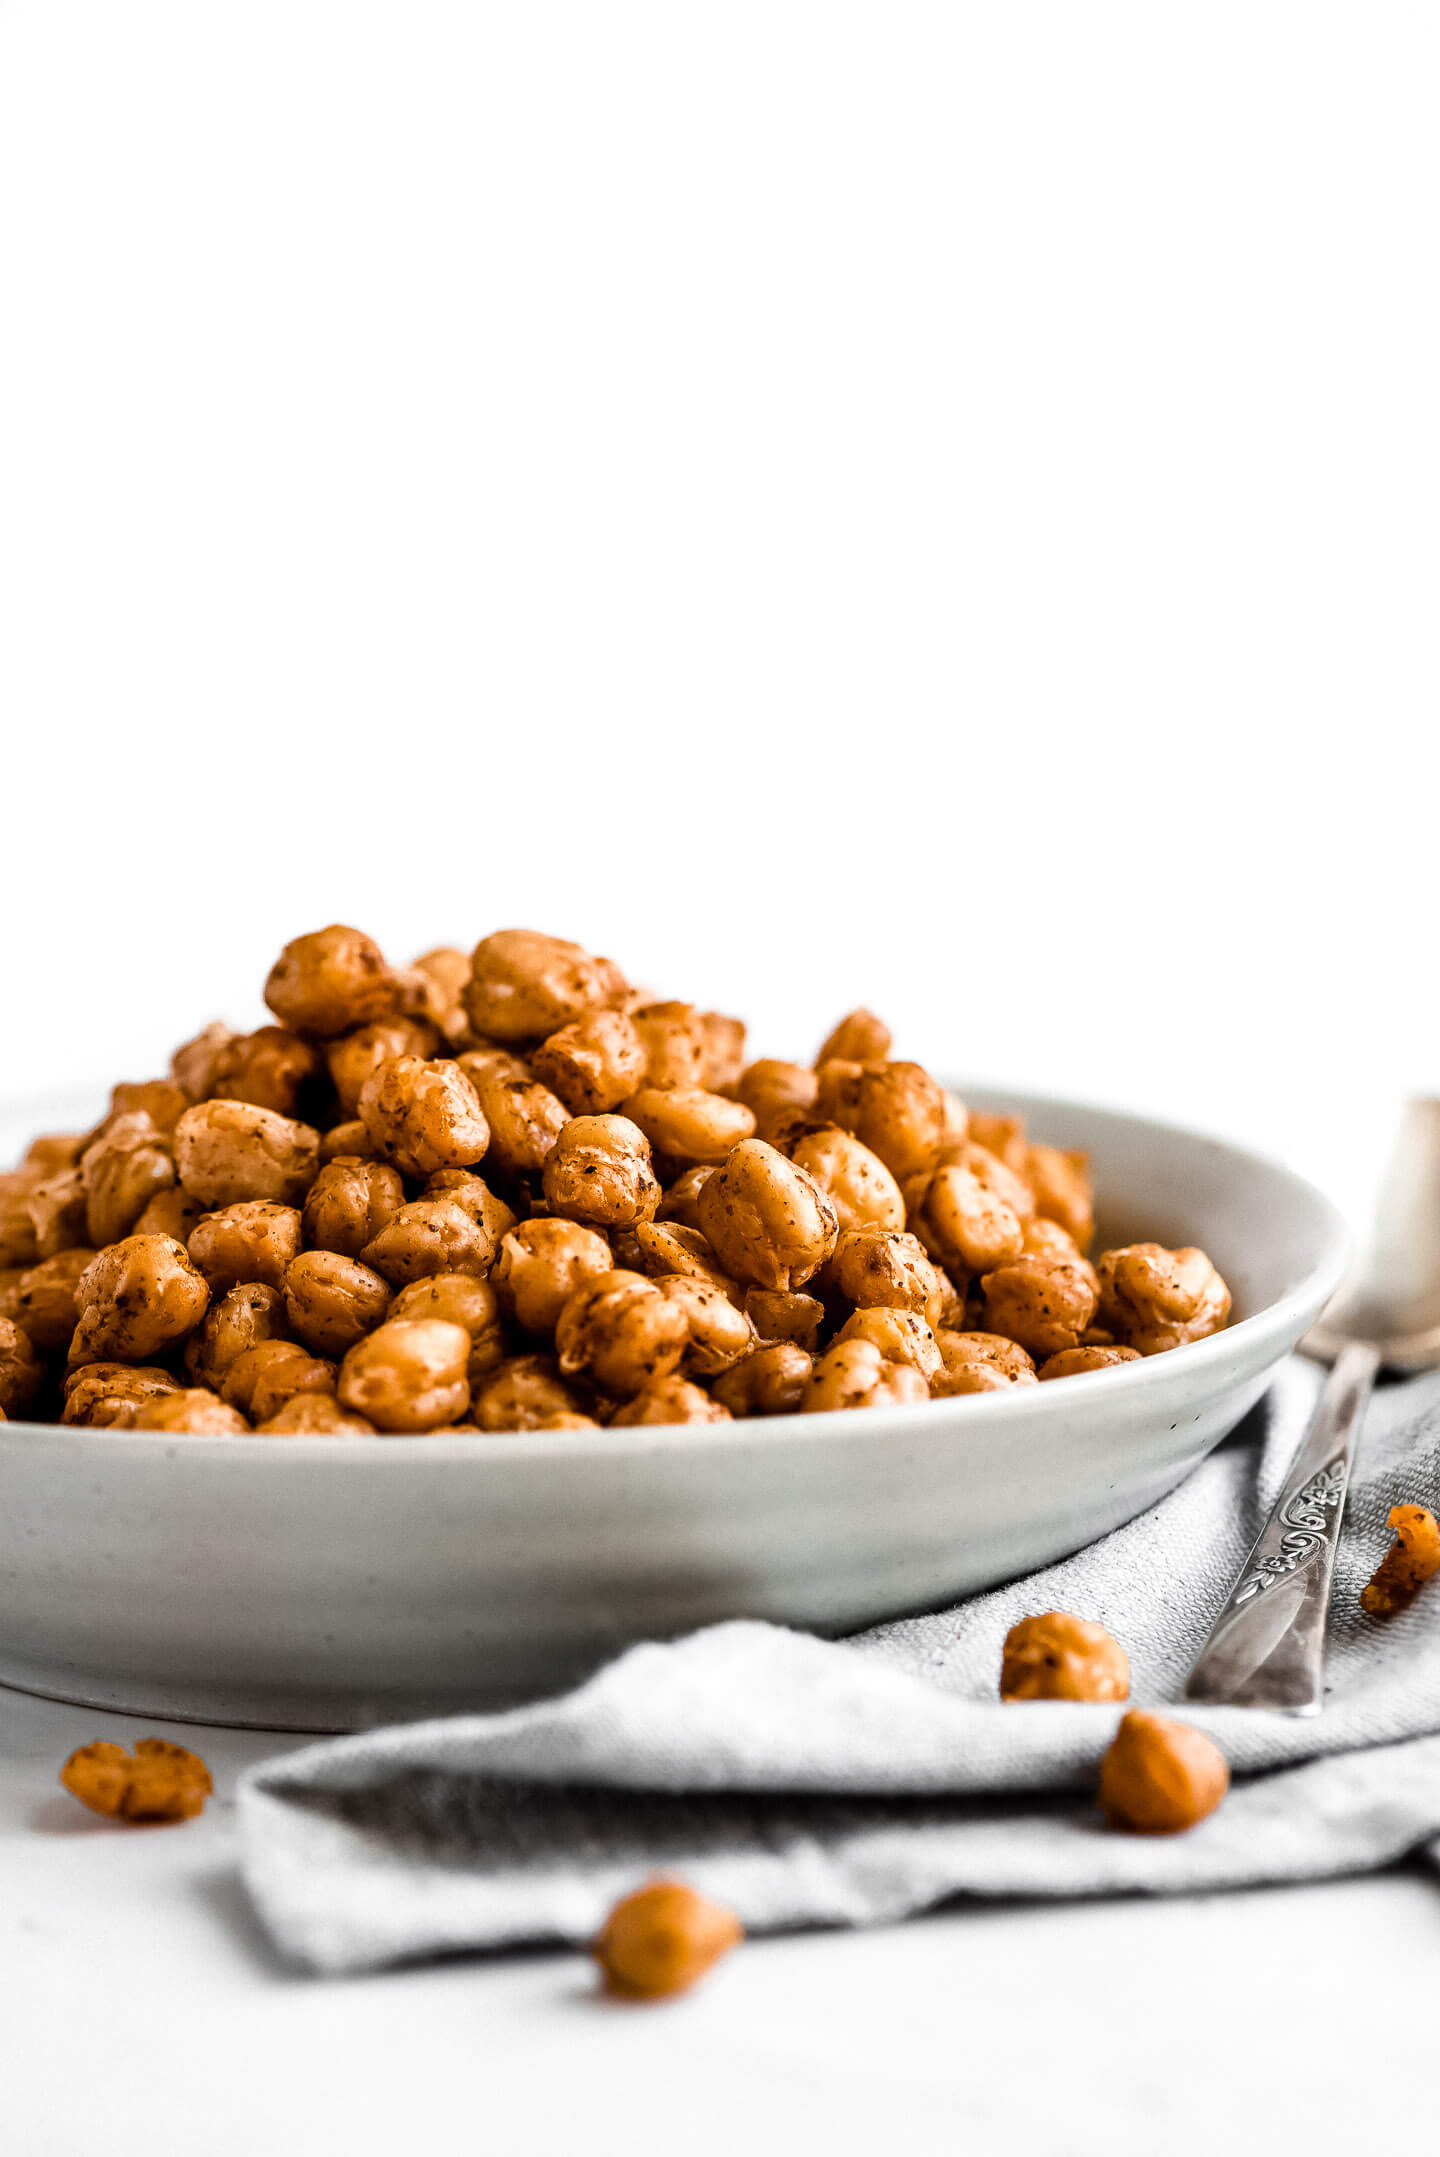 Crispy seasoned chickpeas piled high in a bowl with a spoon to the side on a gray cloth napkin.